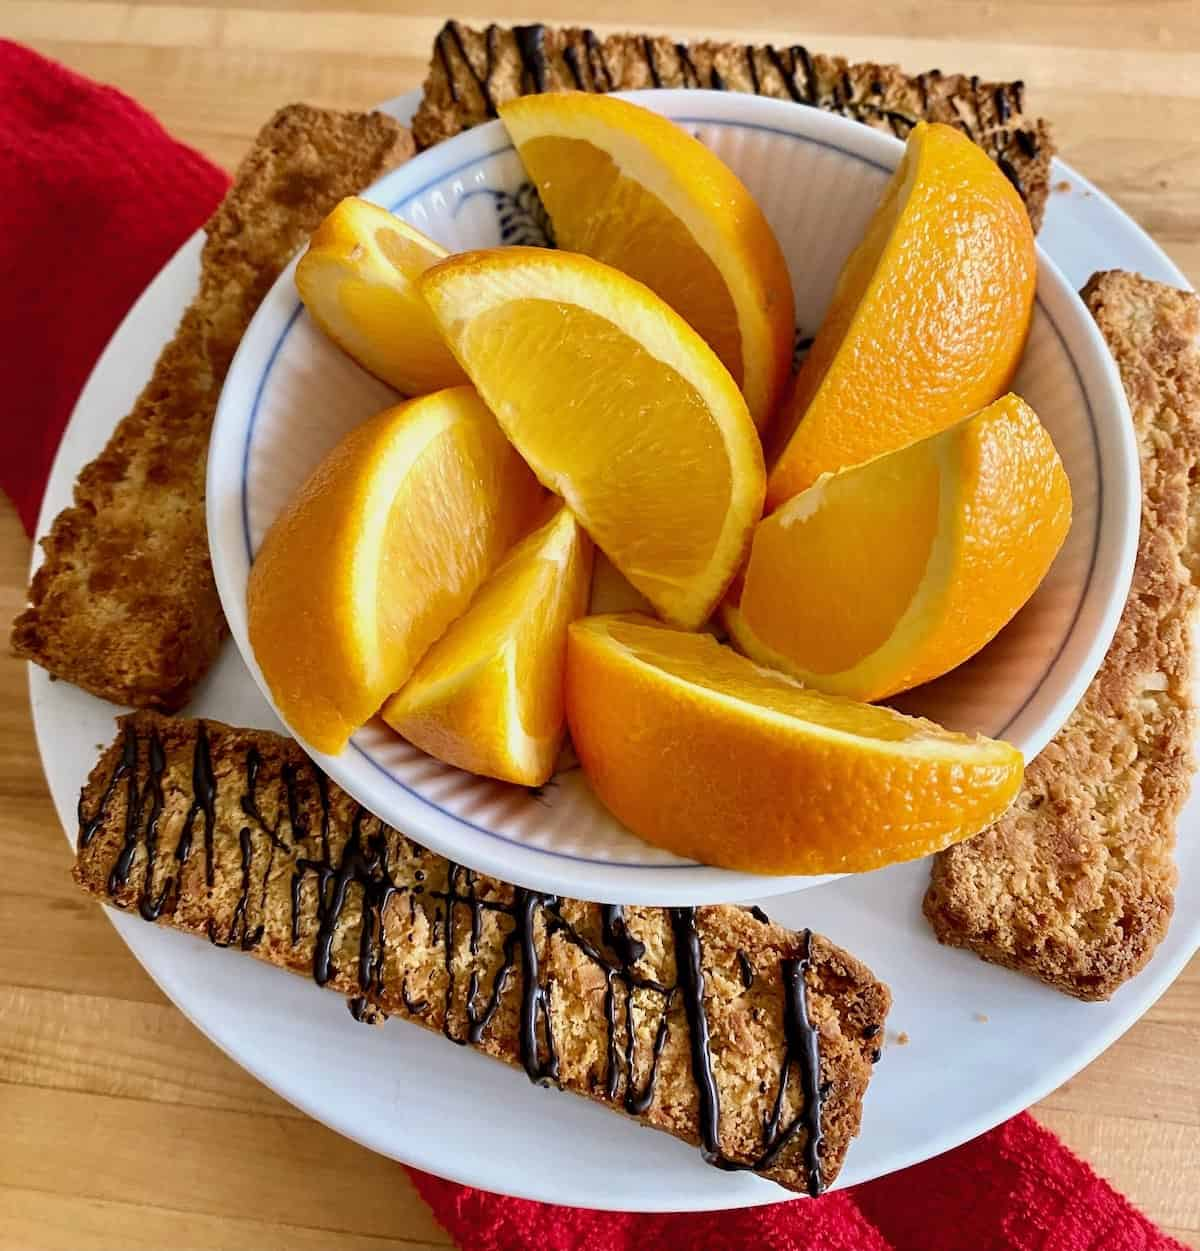 toasted coconut biscotti with chocolate espresso drizzle on plate with oranges